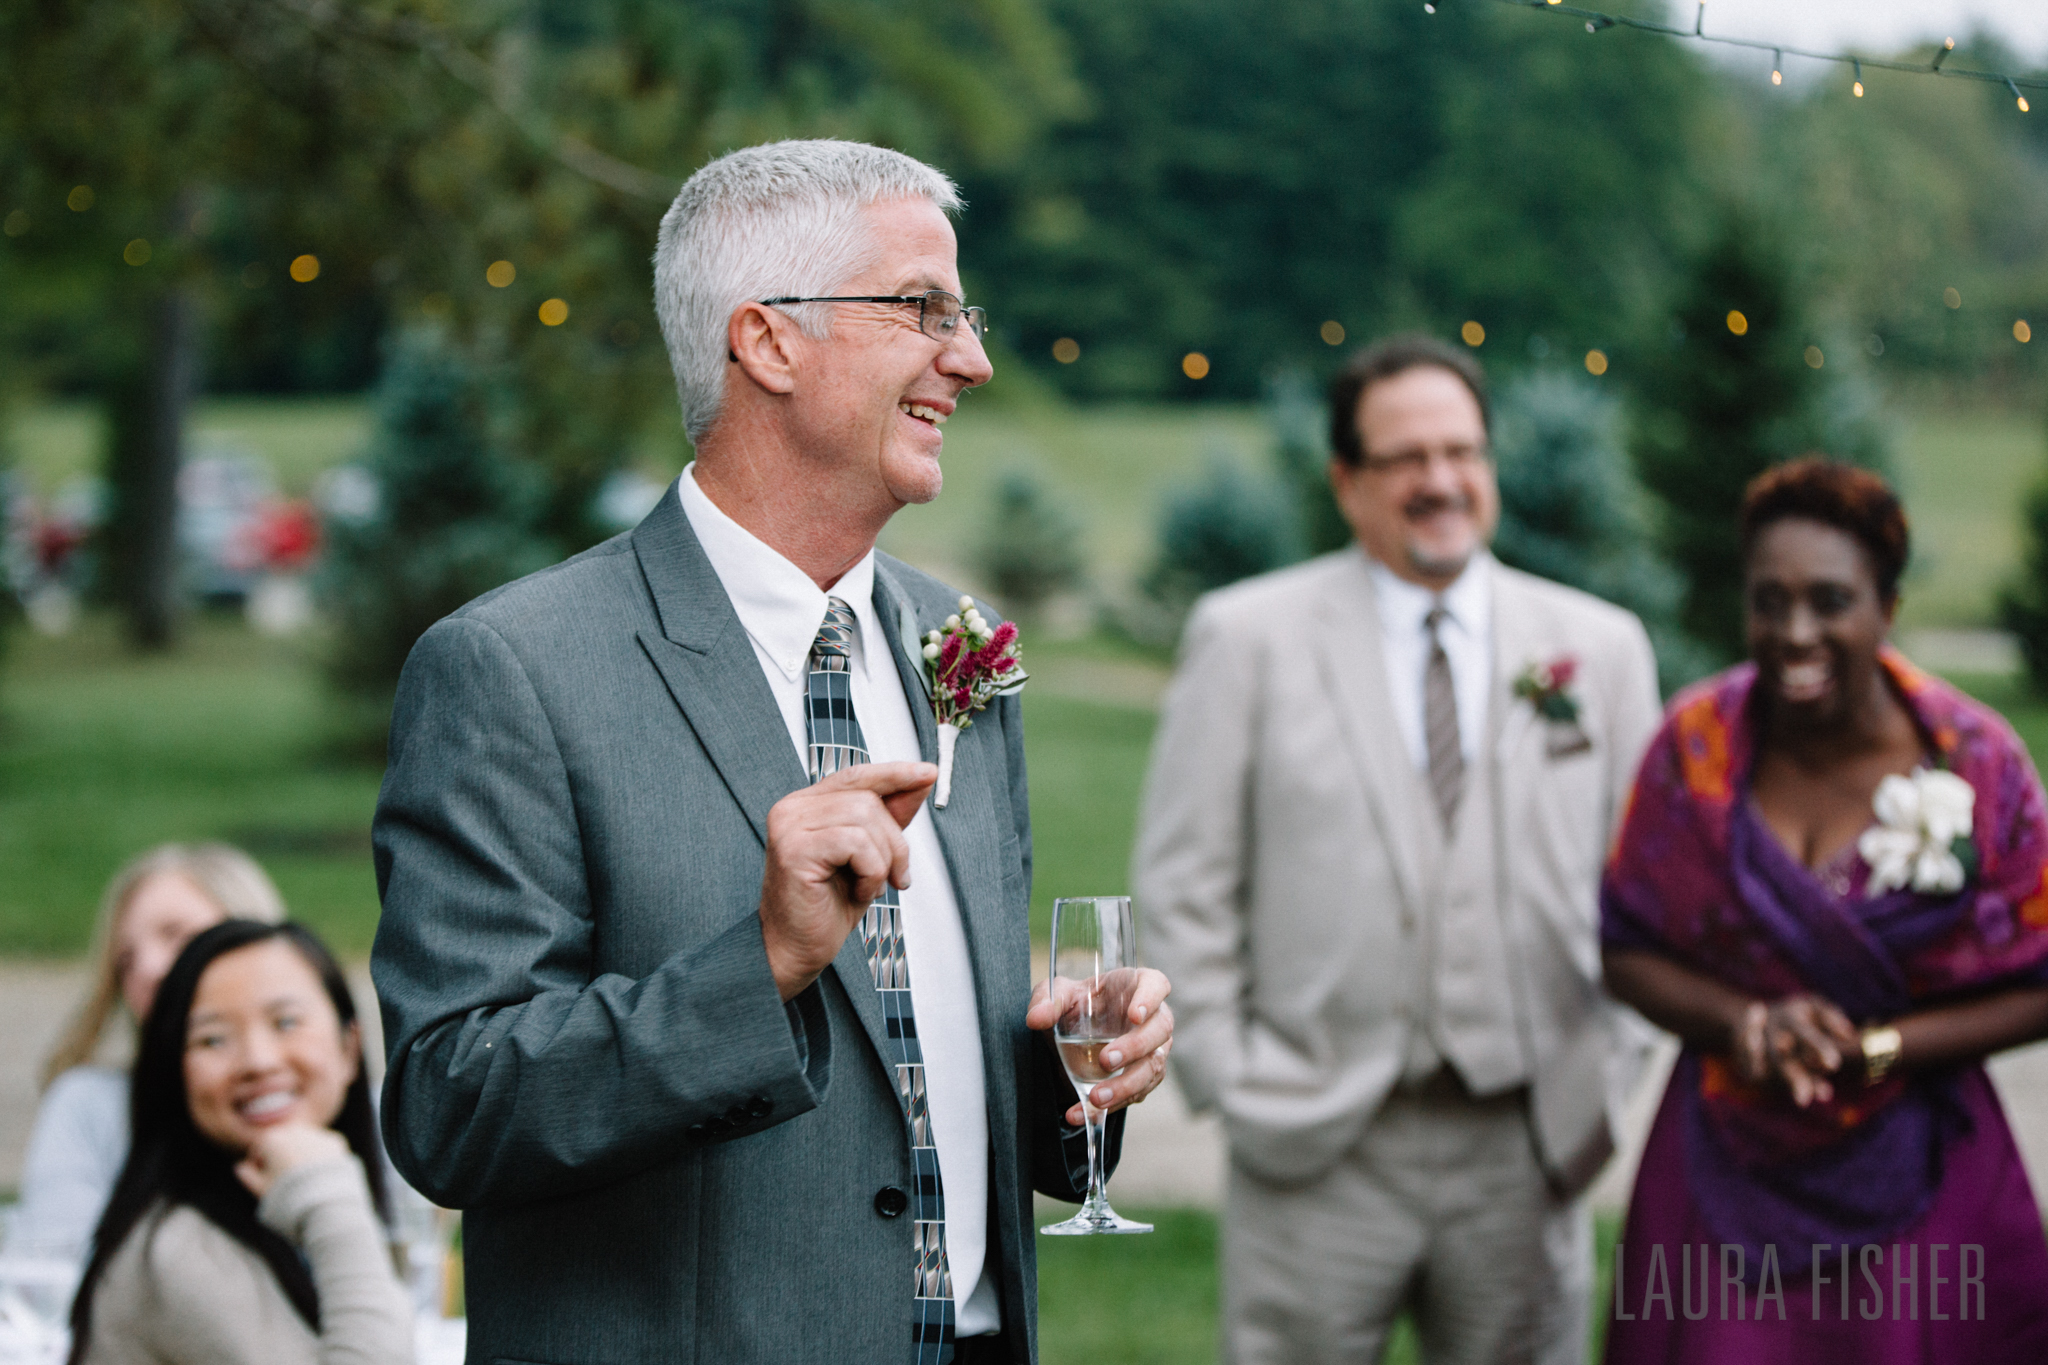 timeless-charm-events-wedding-cincinnati-0099-2.jpg